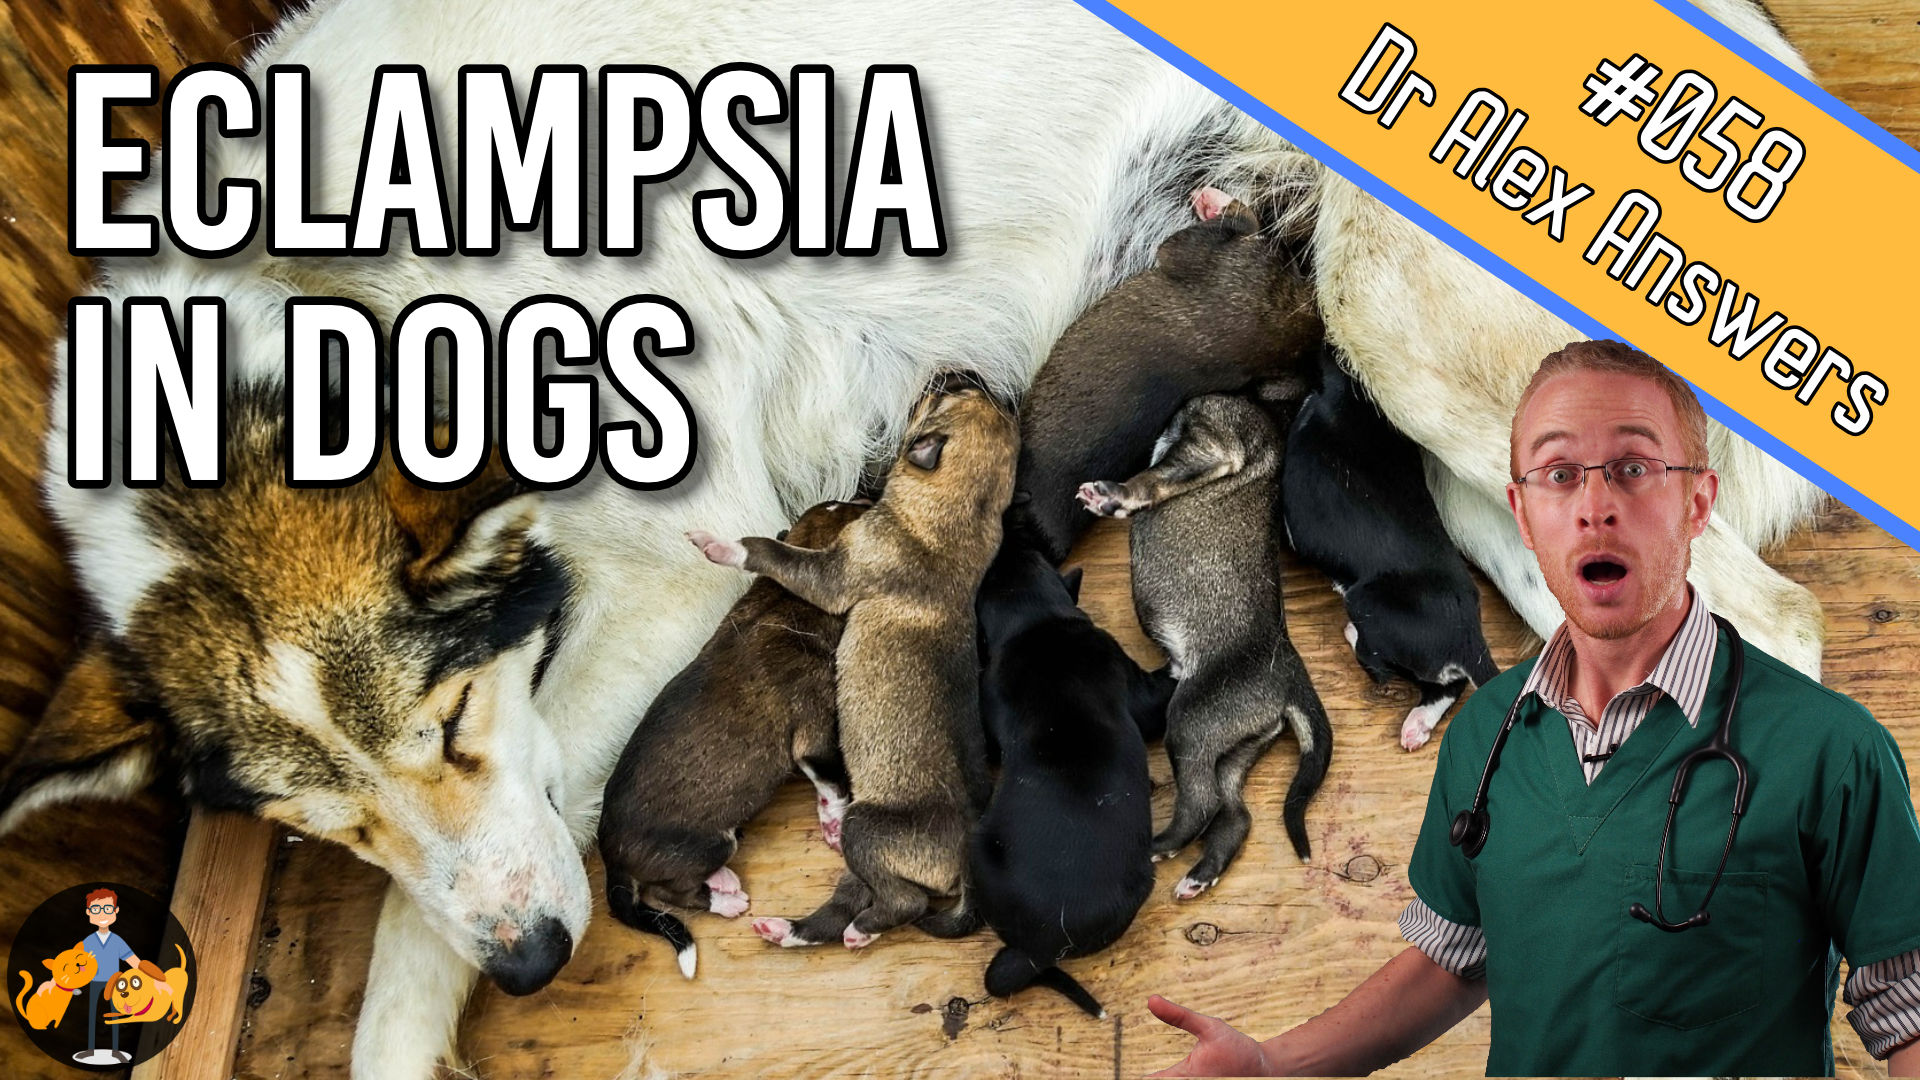 female dog feeding lots of puppies with the title eclampsia in dogs and a picture of Dr Alex with a shocked expression